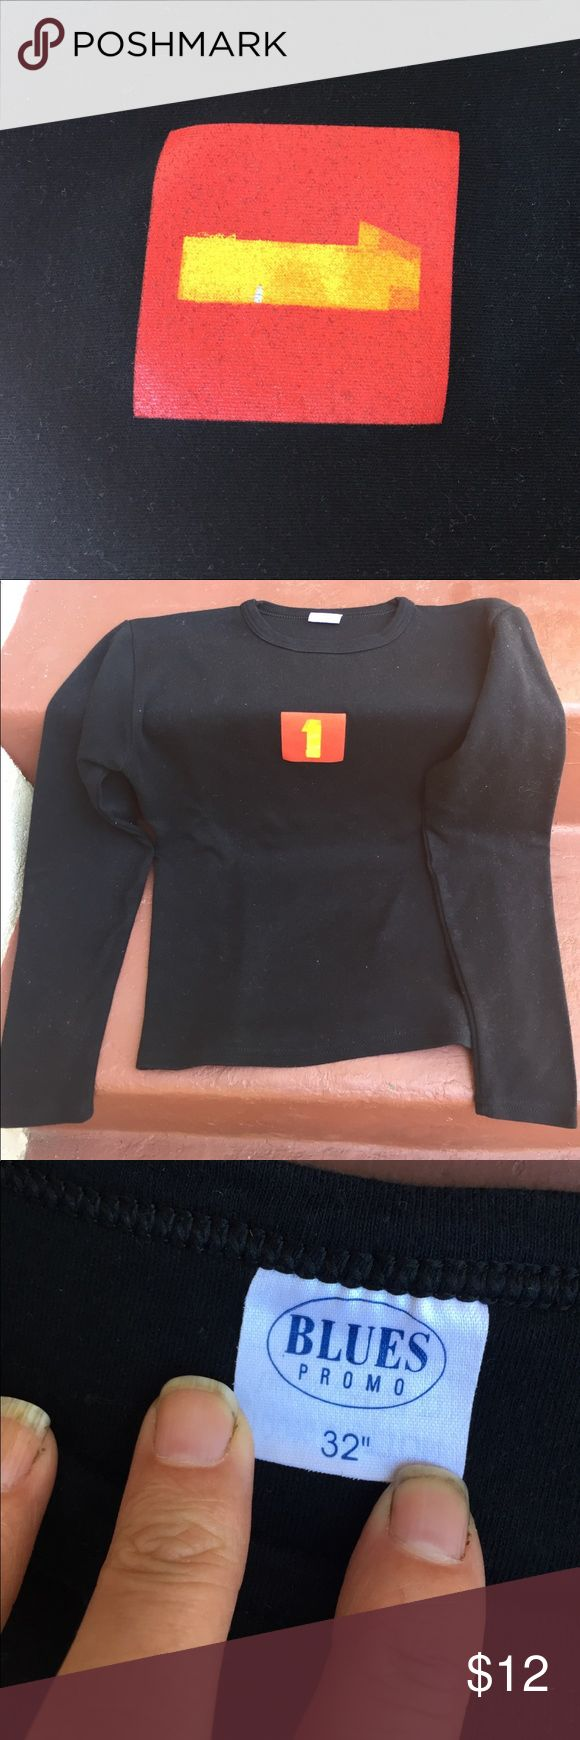 Beatles one album promo tee- limited edition Xs -S ish . size black long sleeve - slightly cropped look - ie. not a long tee. Never worn.  Limited edition . Tops Tees - Long Sleeve